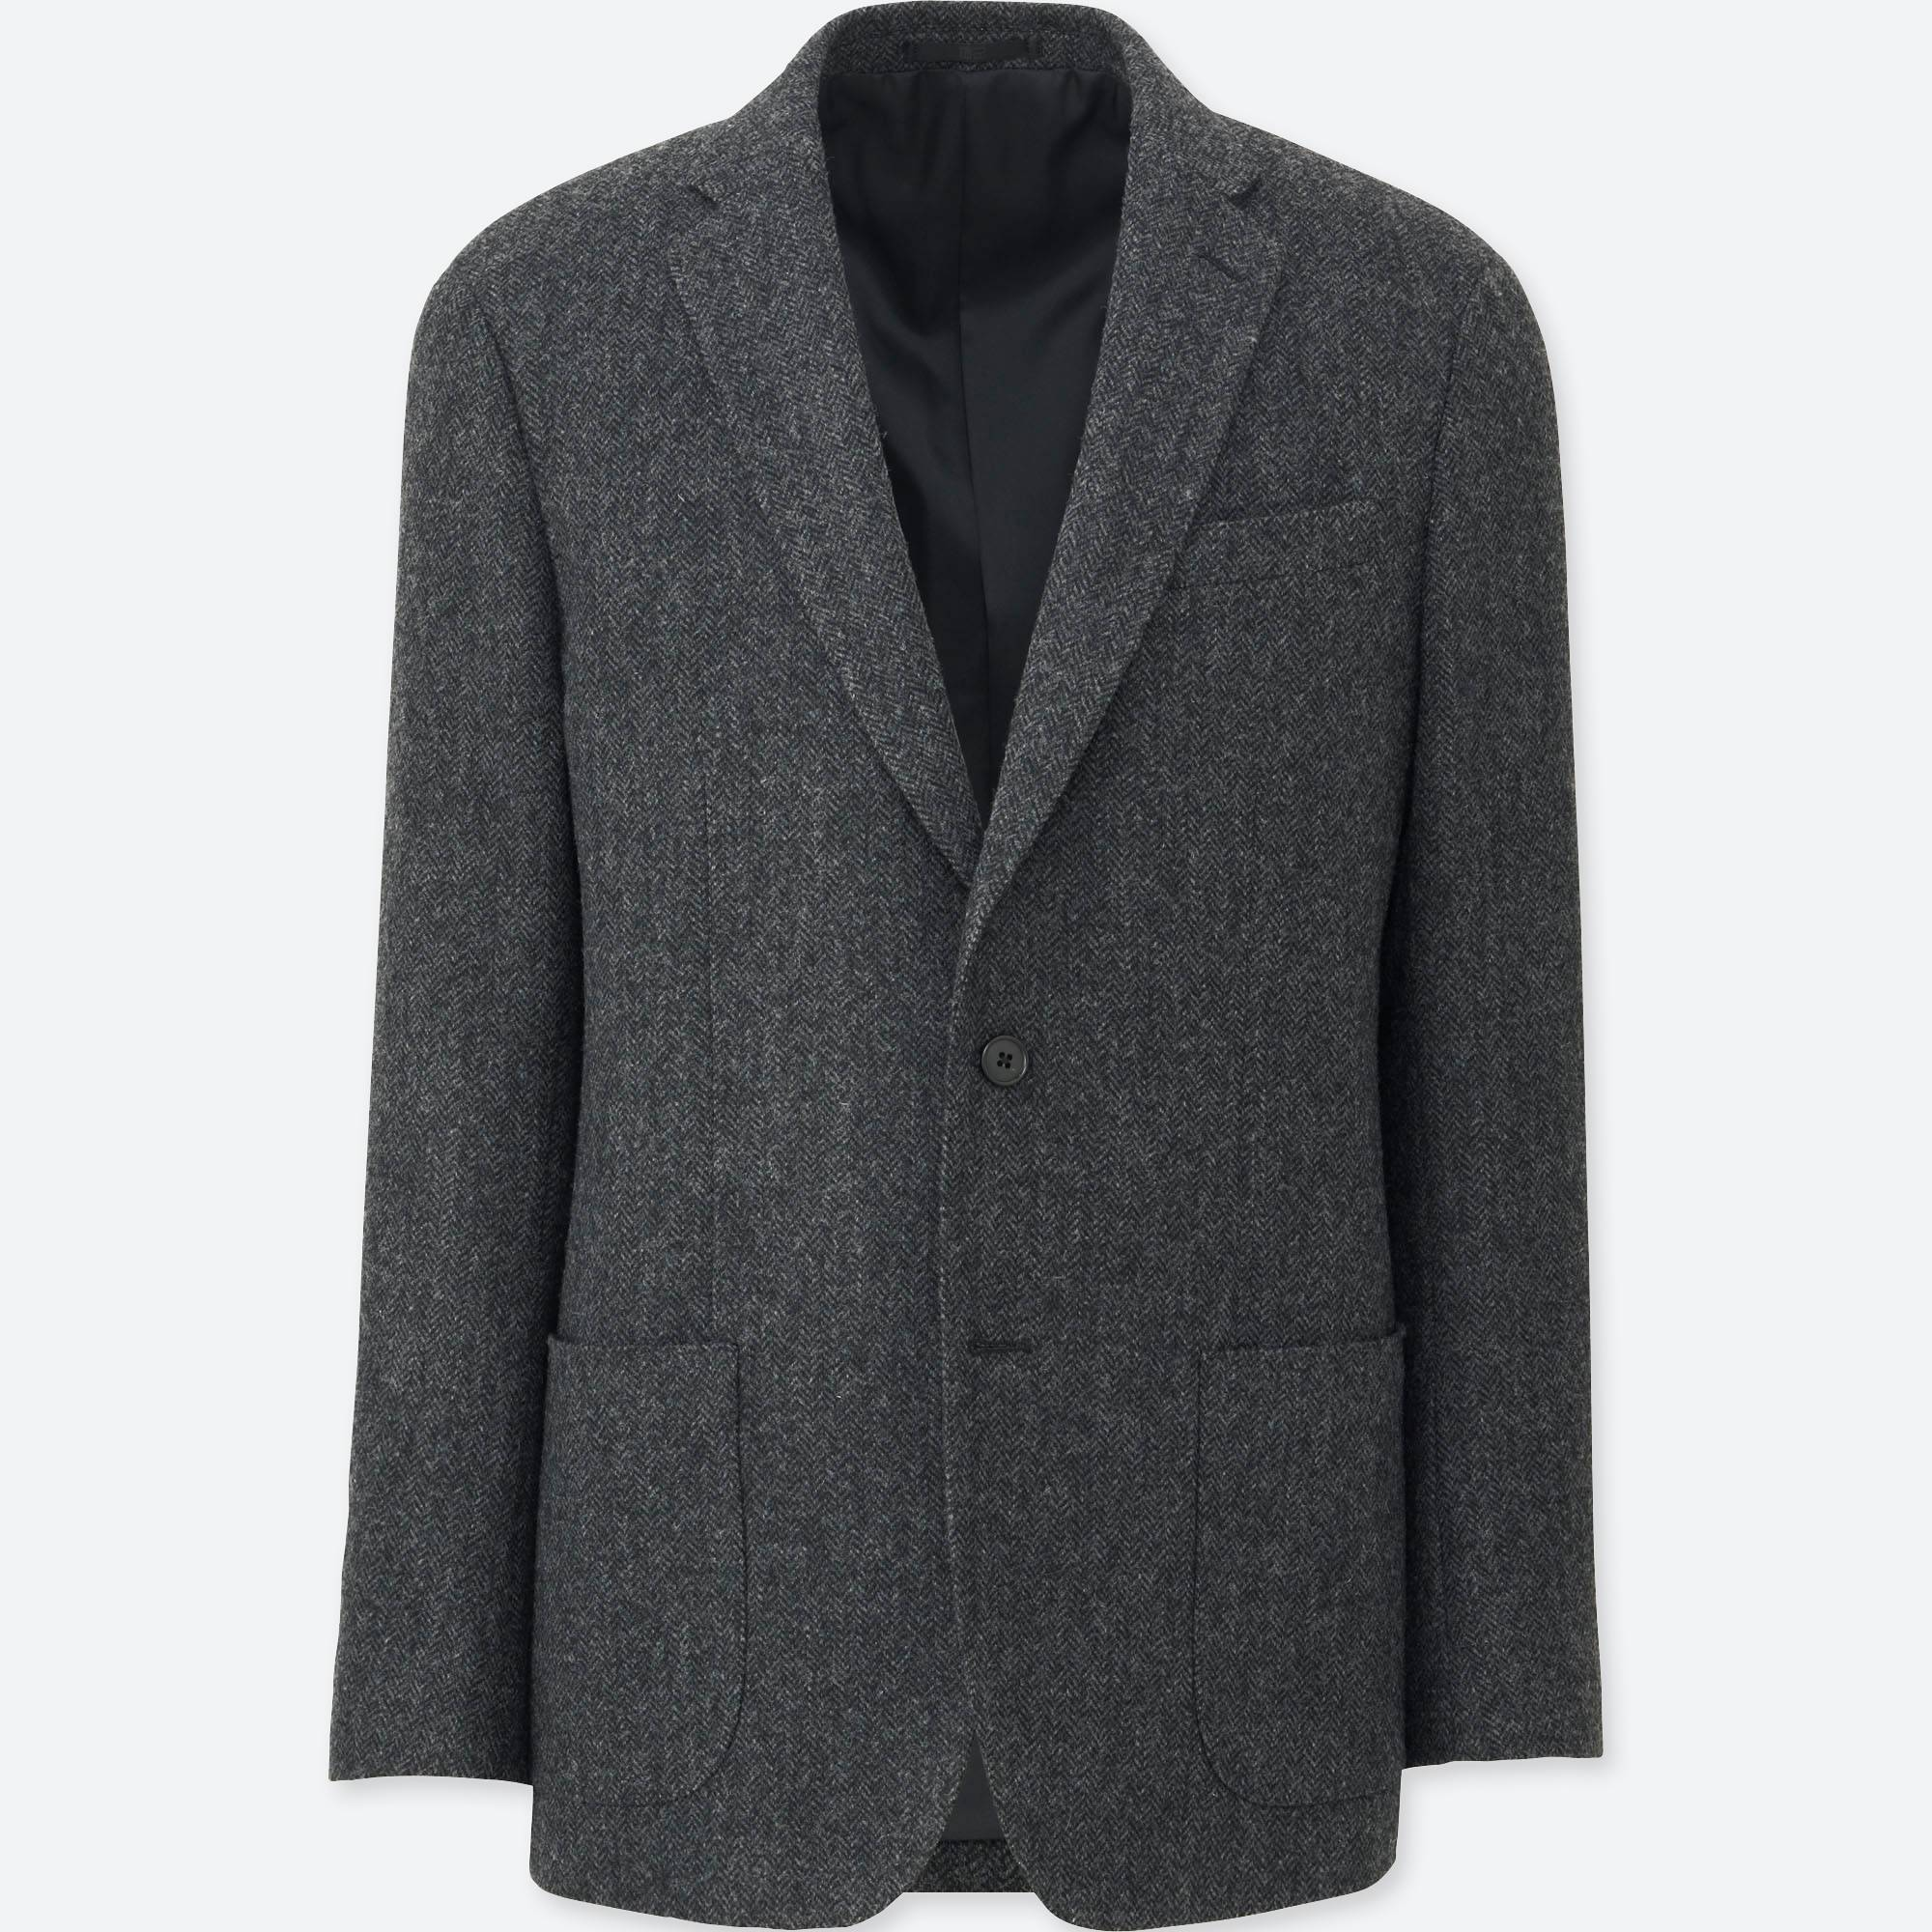 MEN TWEED JACKET | UNIQLO US